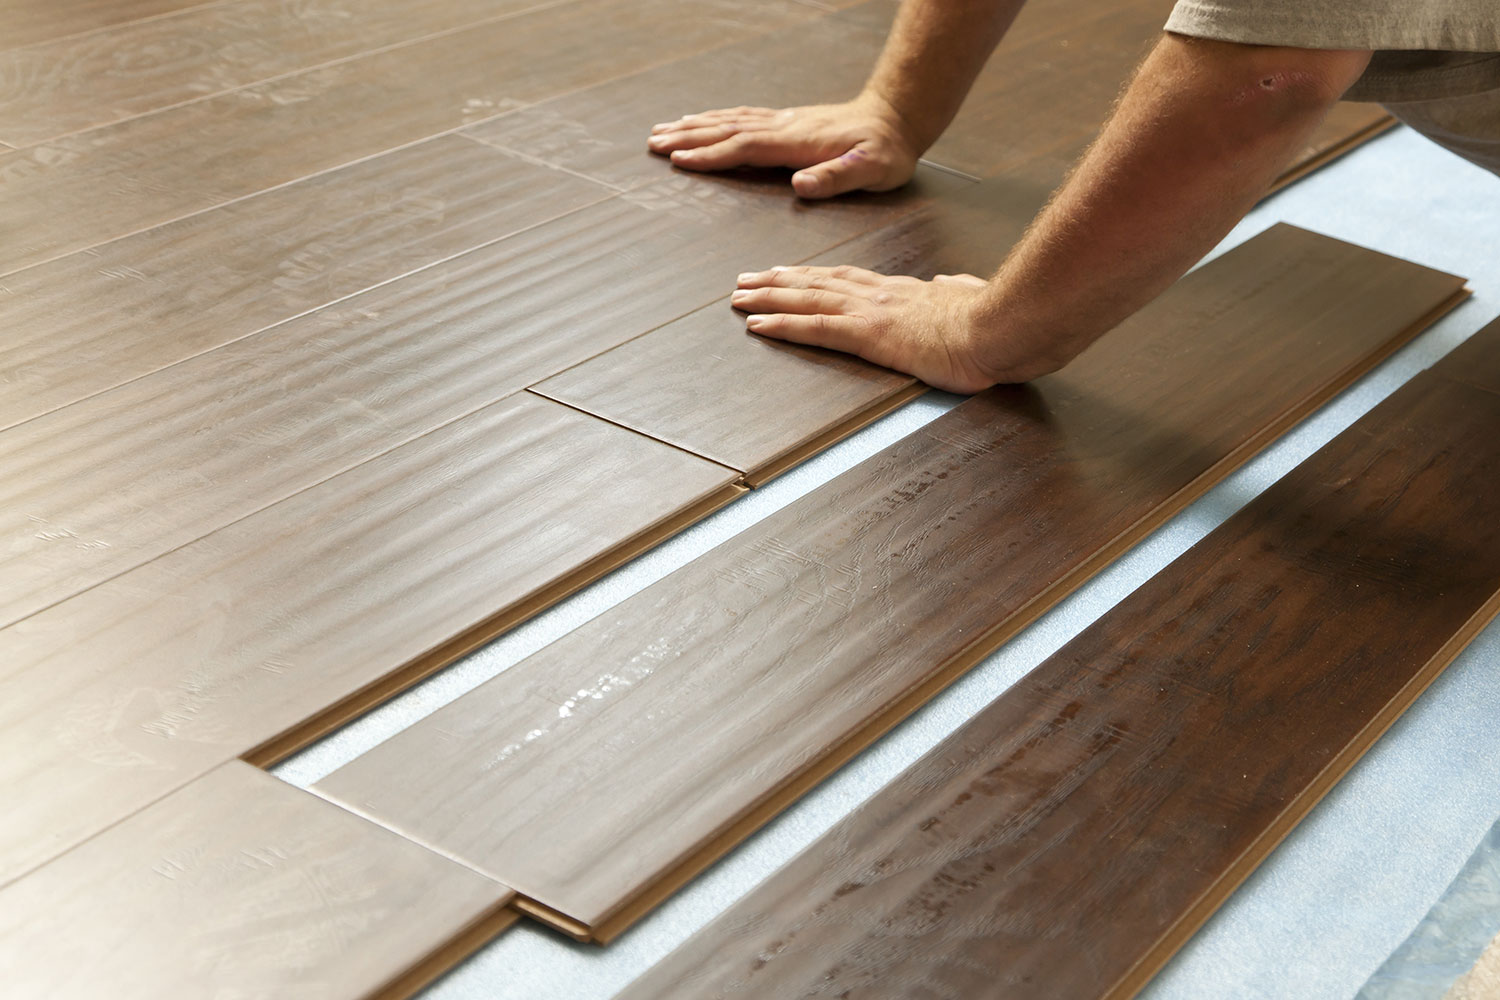 boulder floors flooring oak vancouver eurostyle installation floor laminate classic